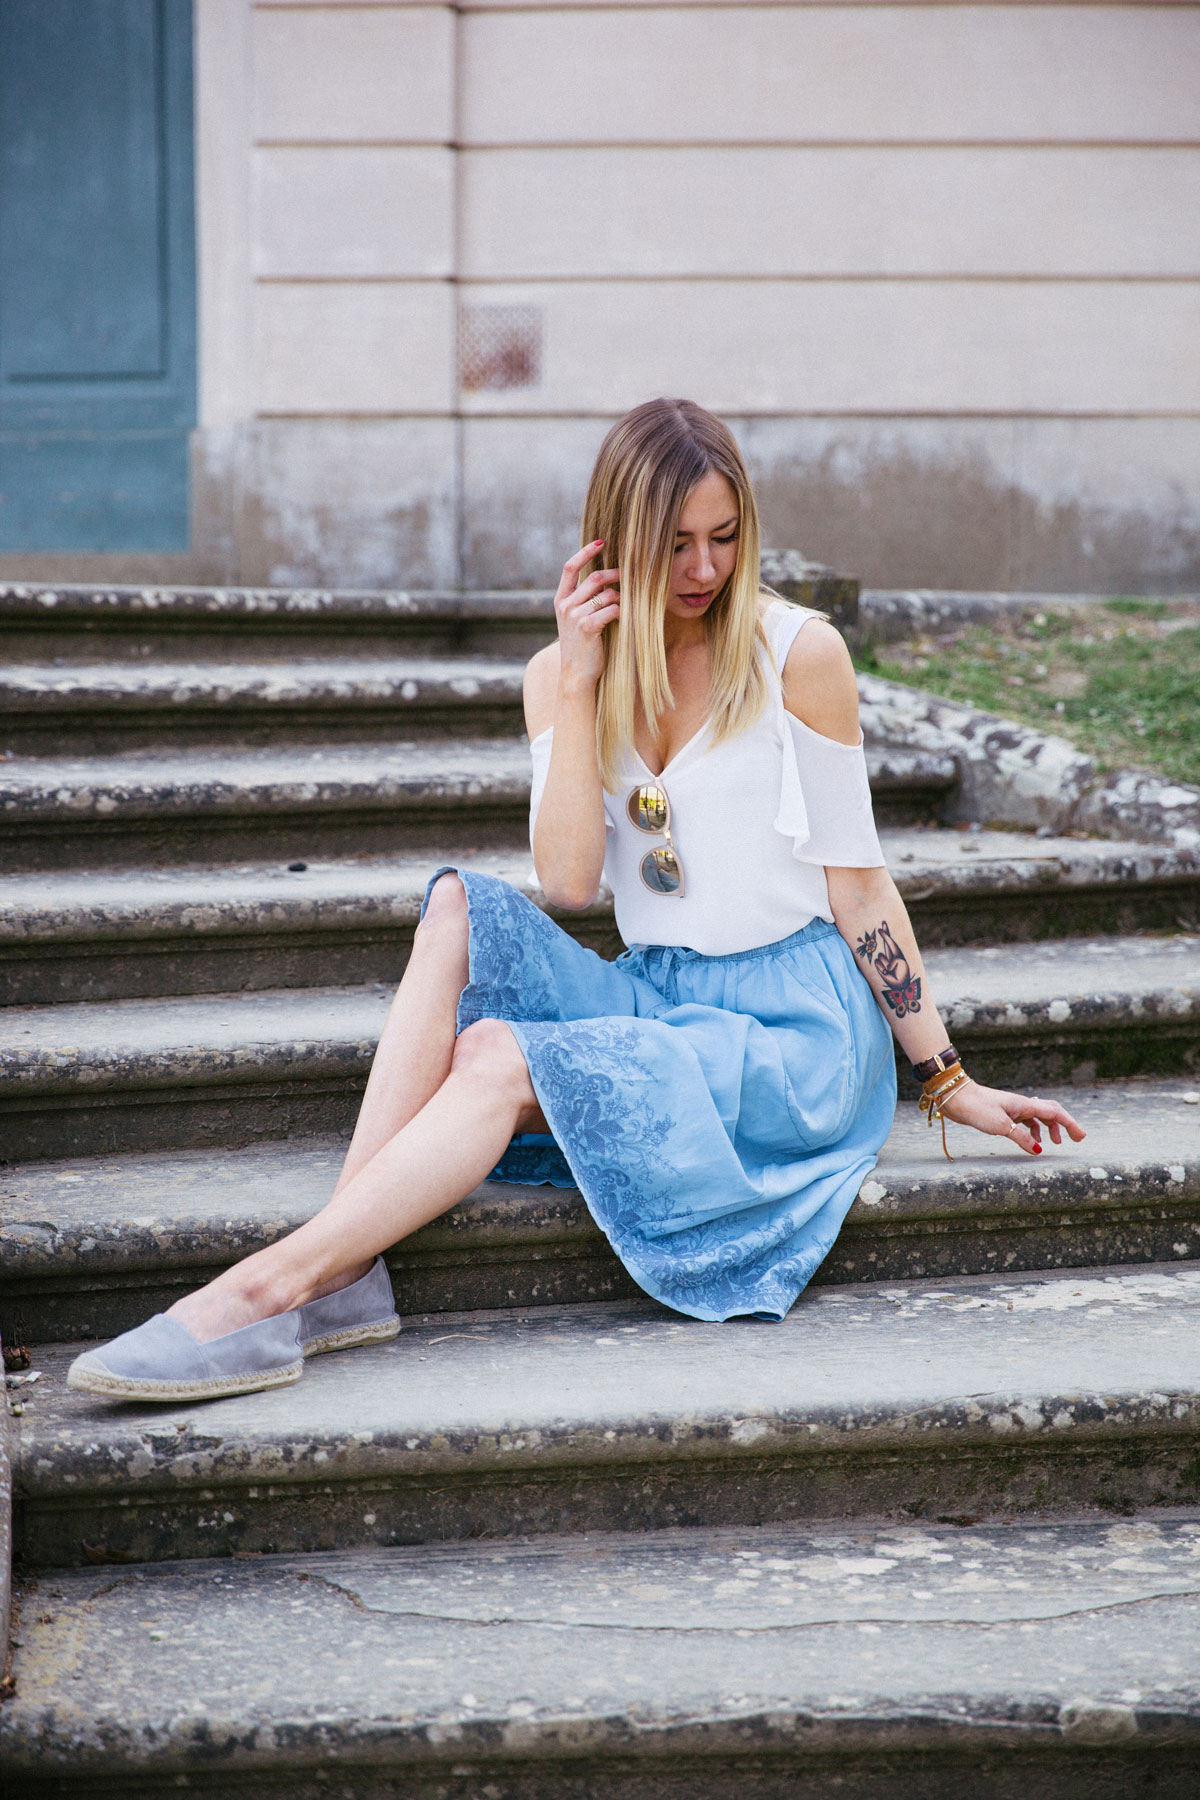 C&A spring / summer collection | Florence | How I met my outfit by Dana Lohmüller